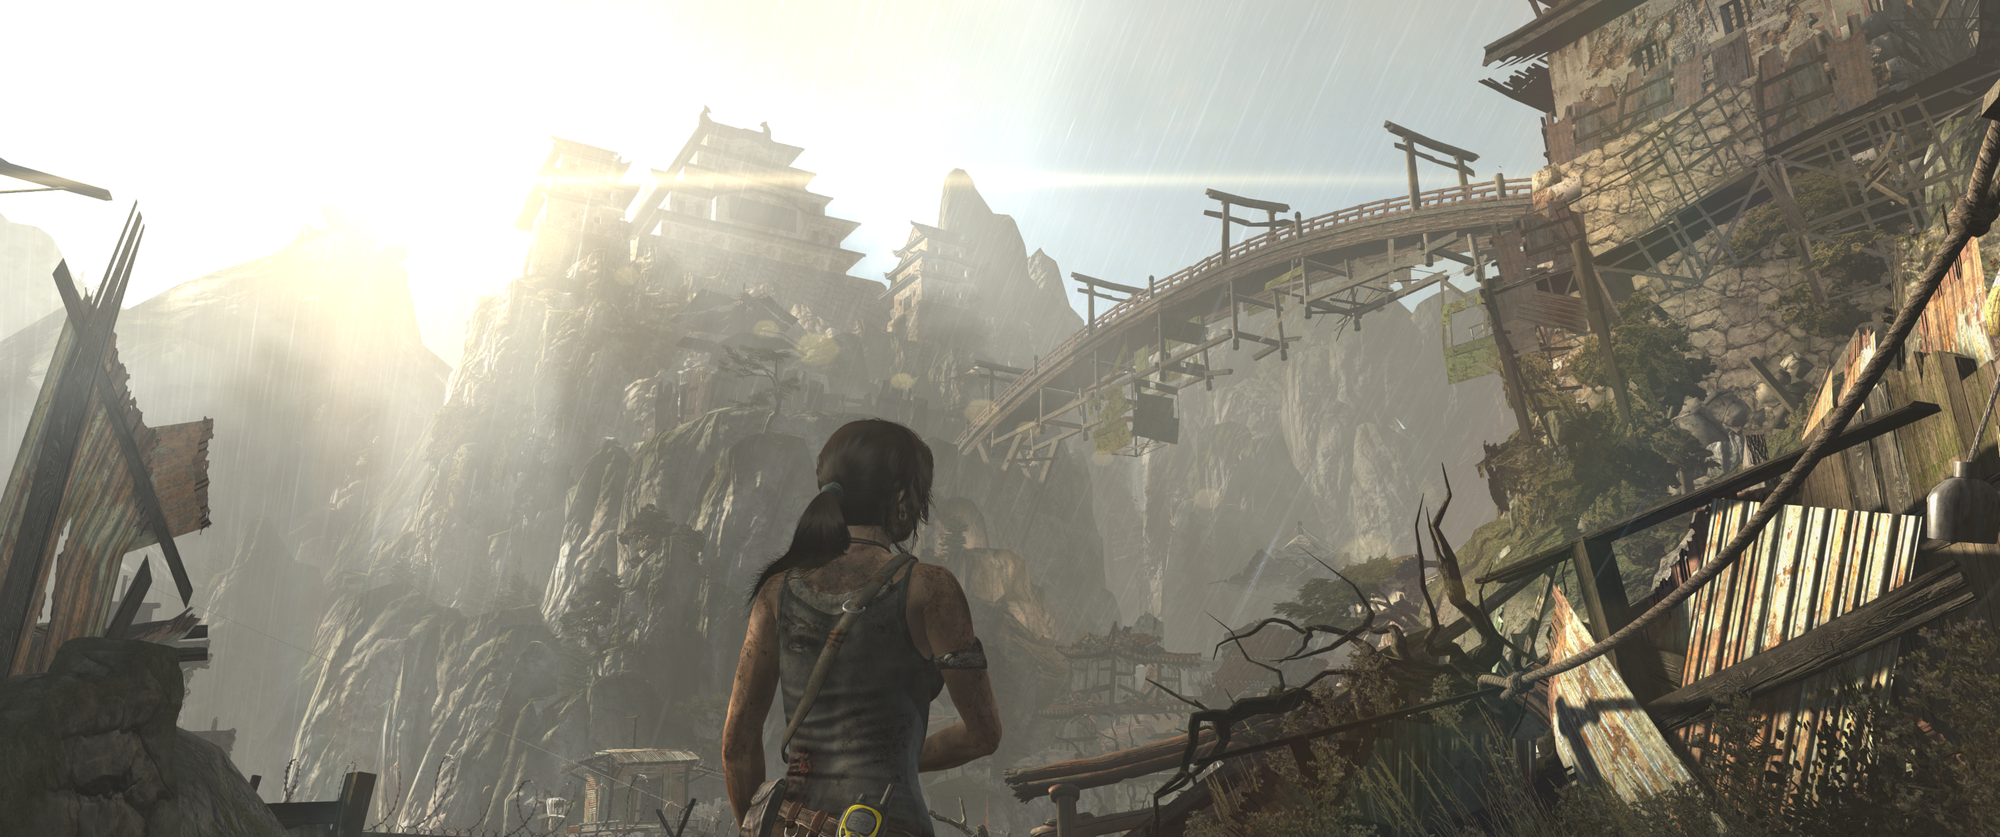 TombRaider_2018_07_23_21_08_39_368.png